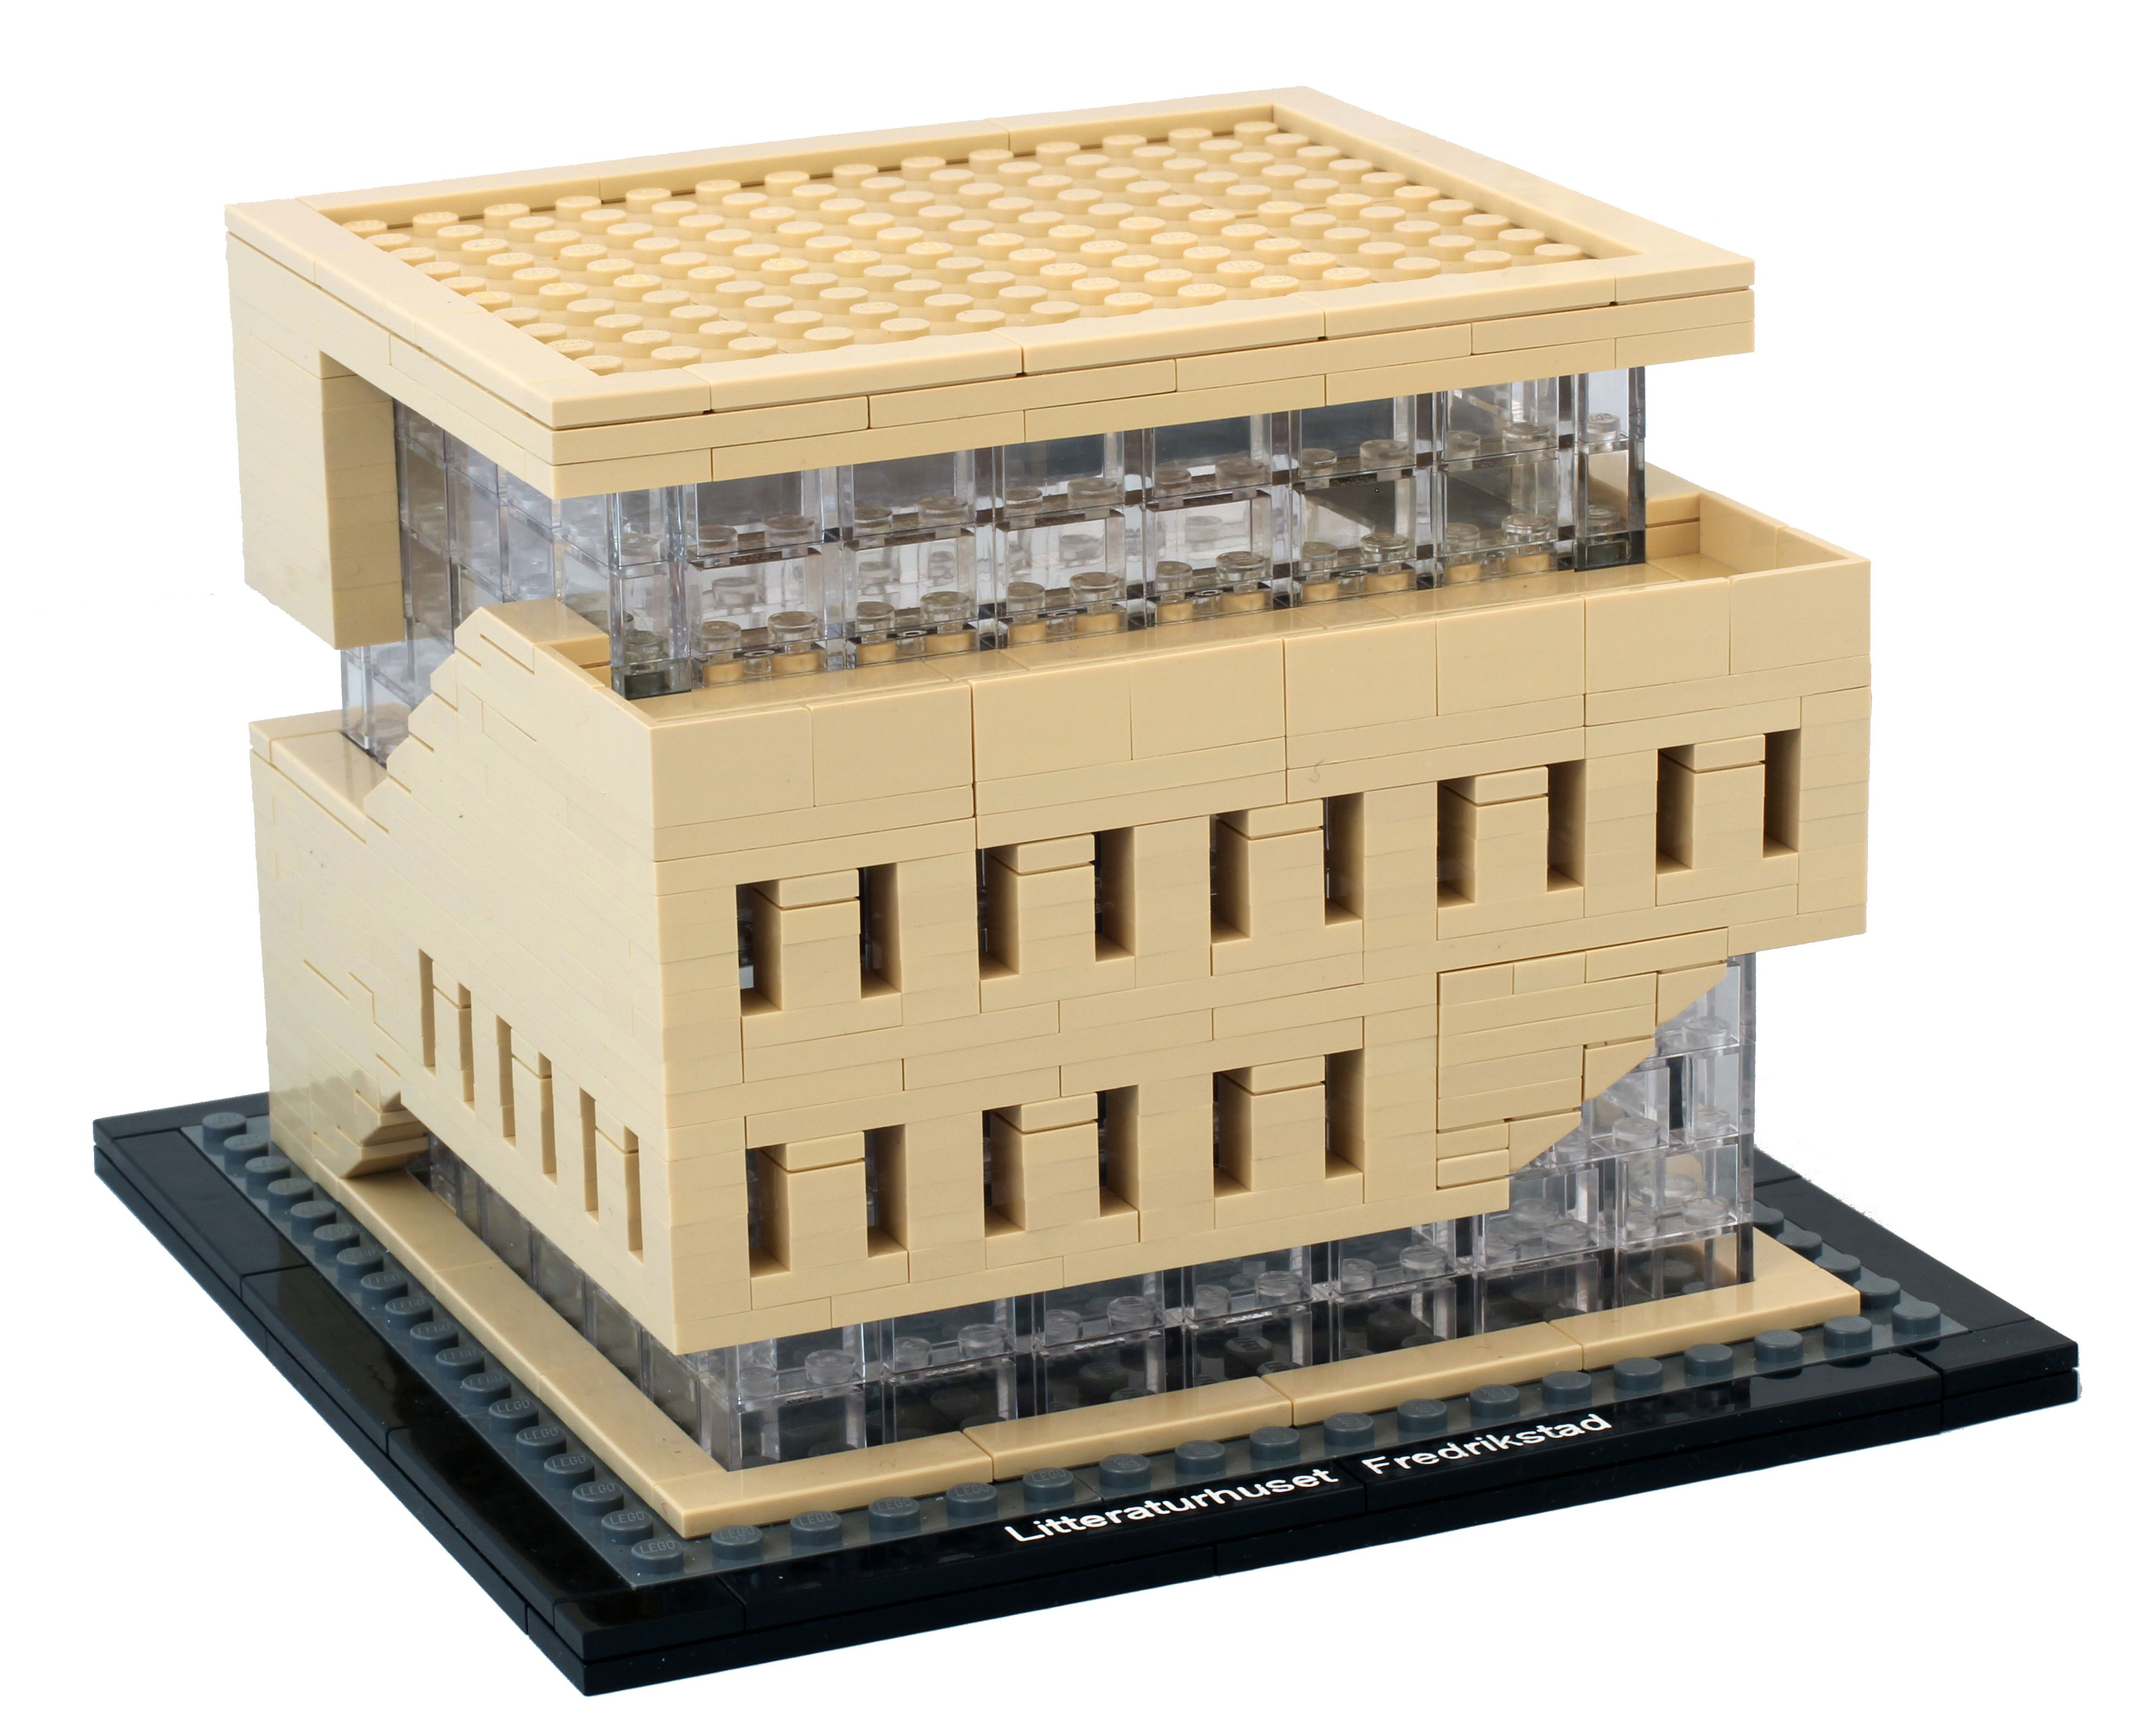 Lego model of the house of literature in fredrikstad norway